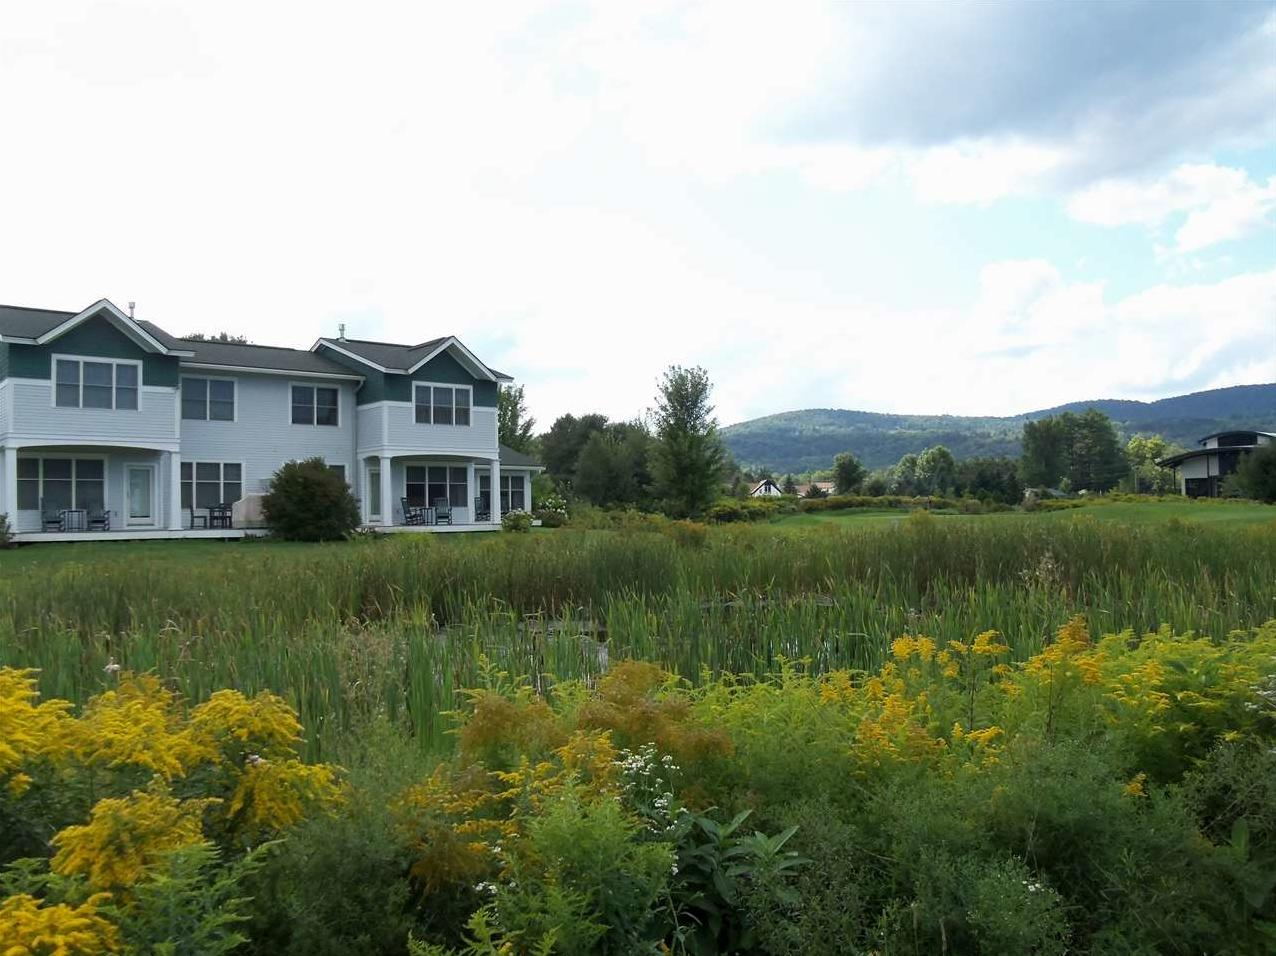 Photo of 1746 Mountain Road Stowe VT 05672